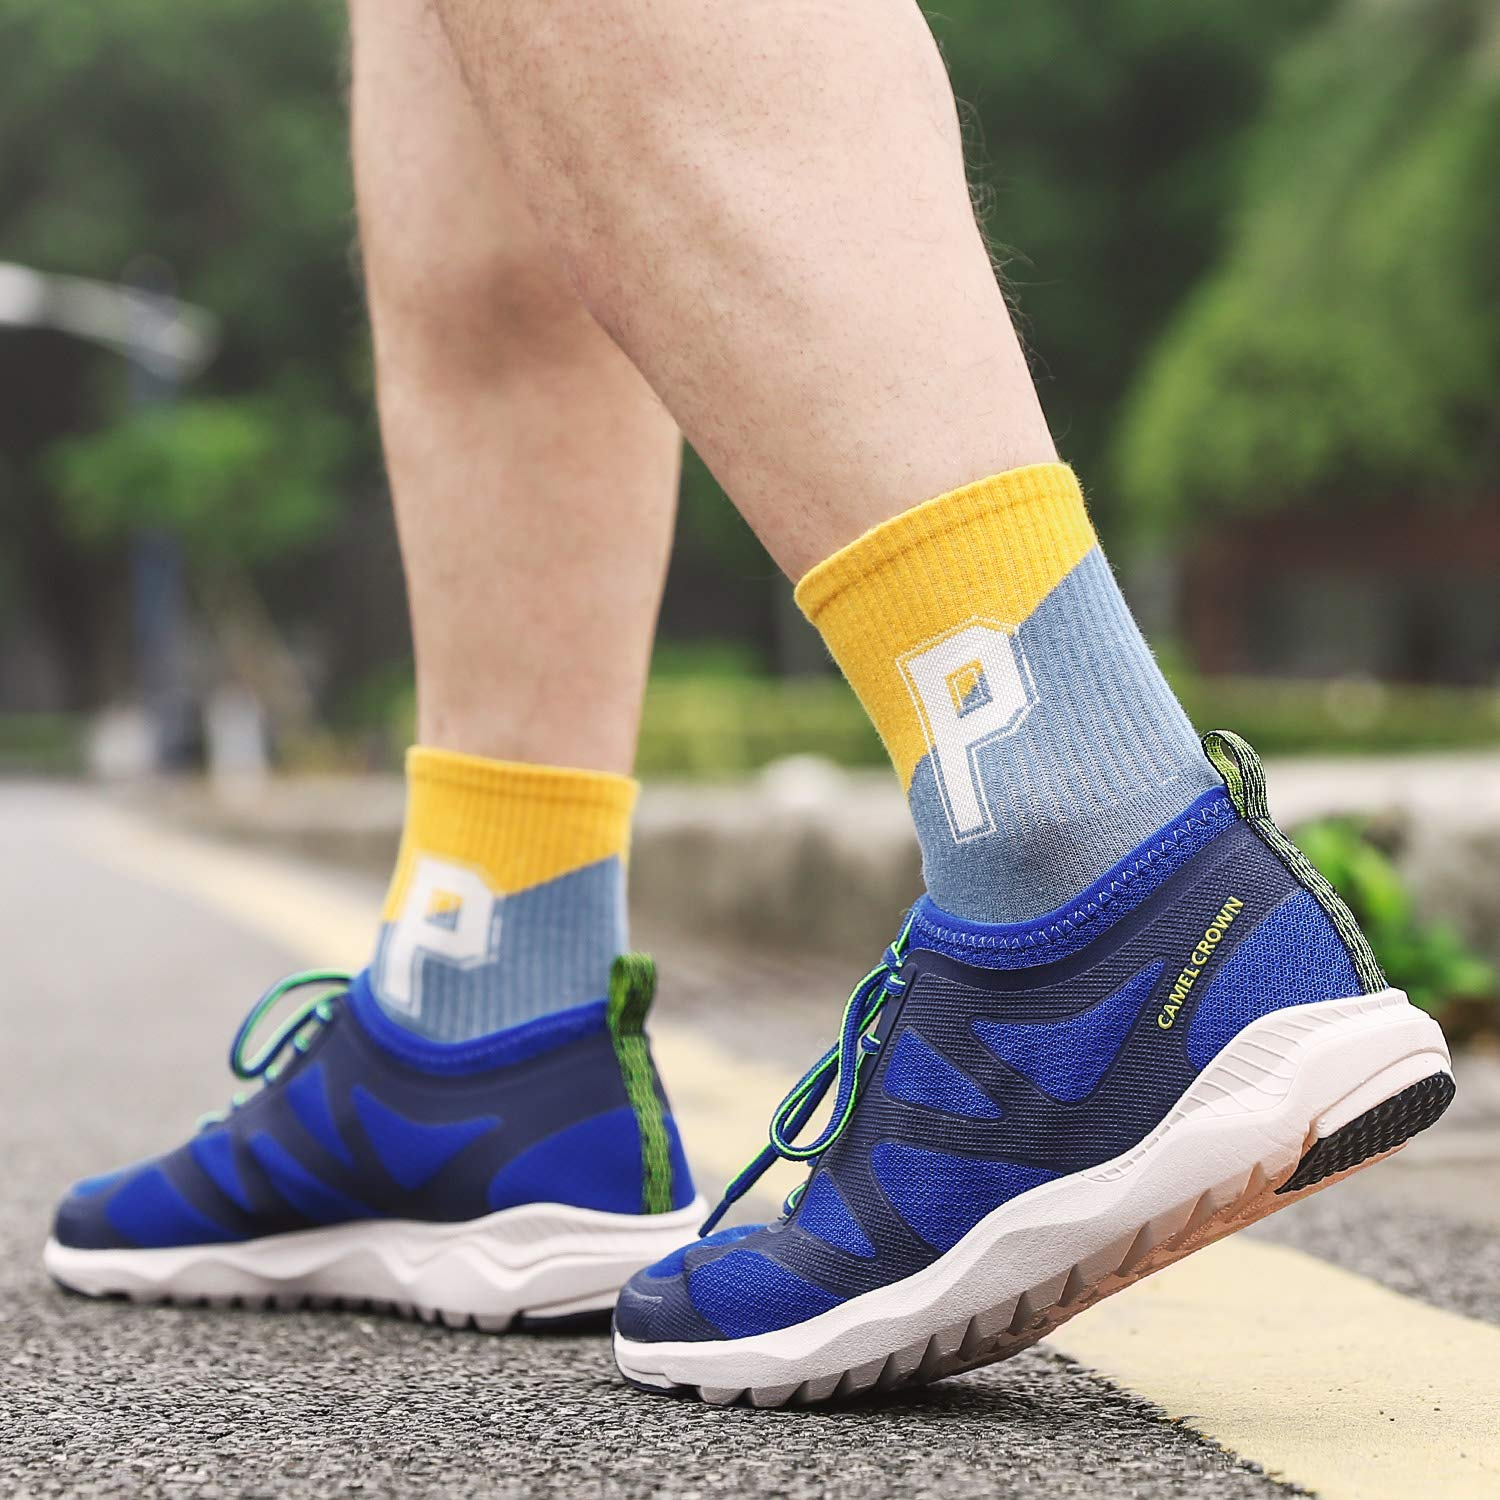 CAMEL CROWN Running Shoes for Men Athletic Walking Tennis Shoes Casual Fashion Sneakers Sport Gym Walking Workout Shoes